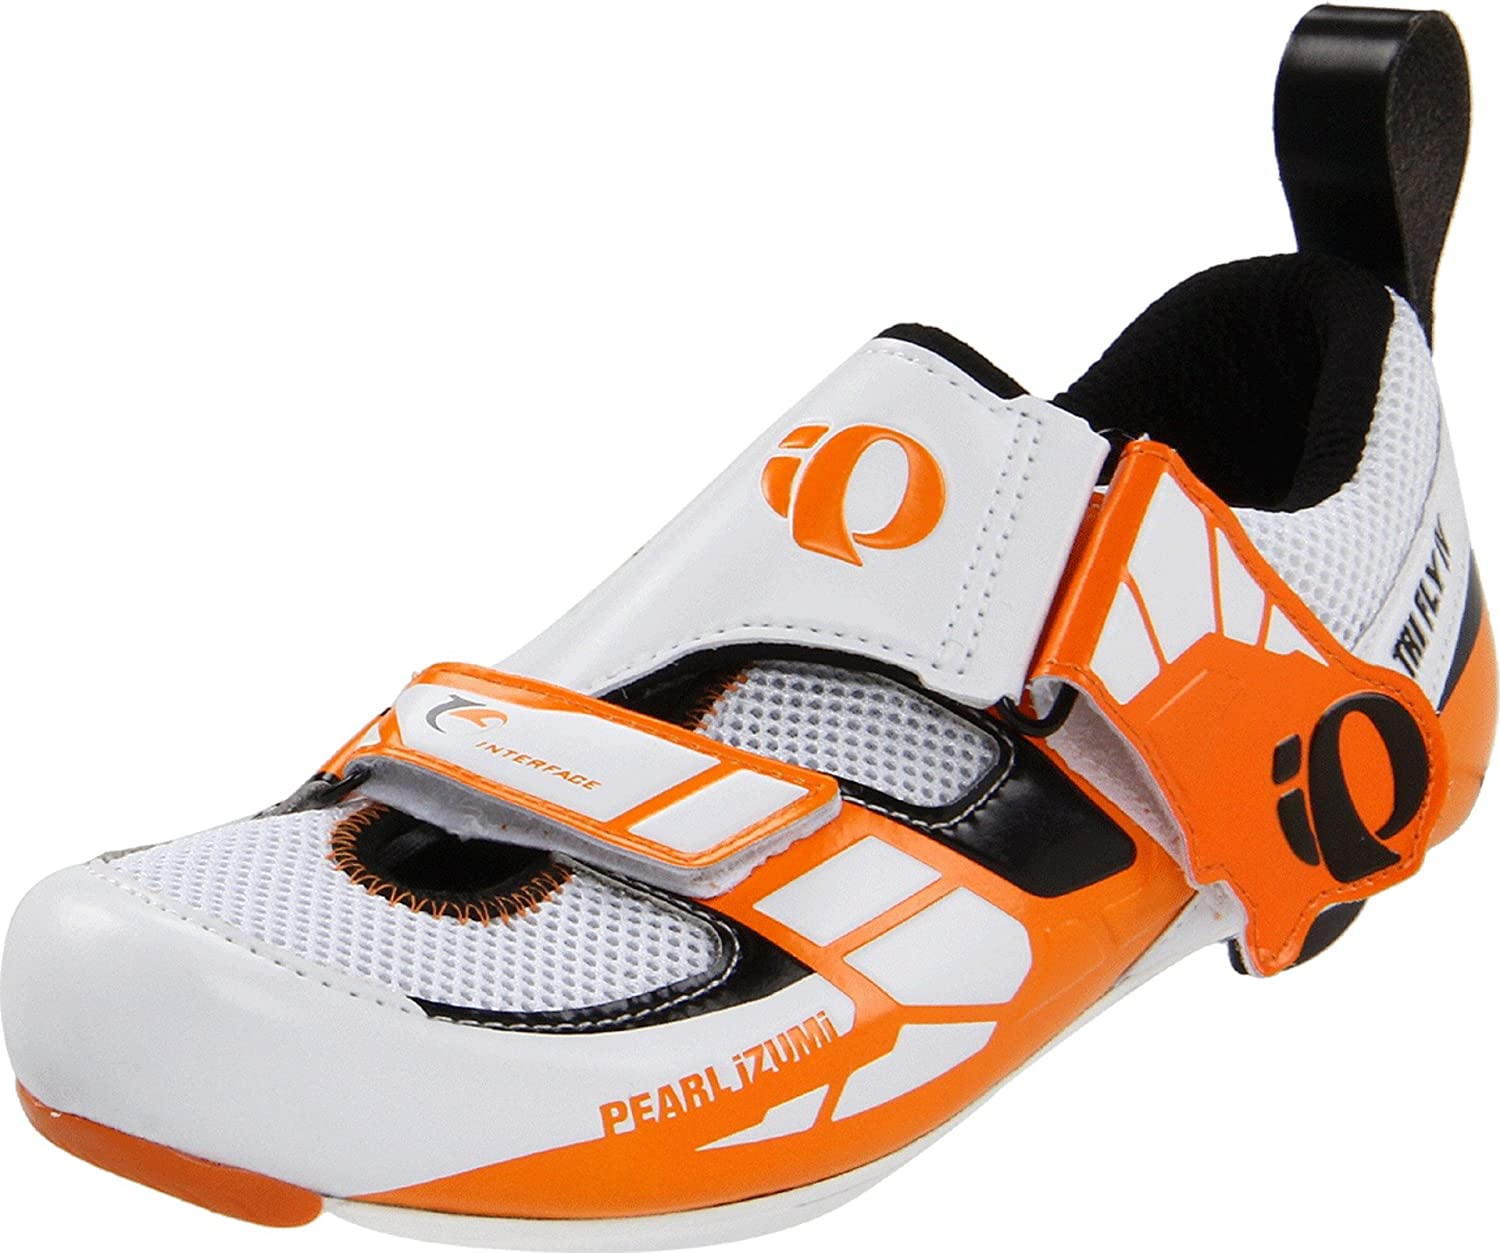 Pearl iZUMi Men's Tri Fly IV Carbon Cycling Shoe B00592984I 40 EU/7 D US|White/Black